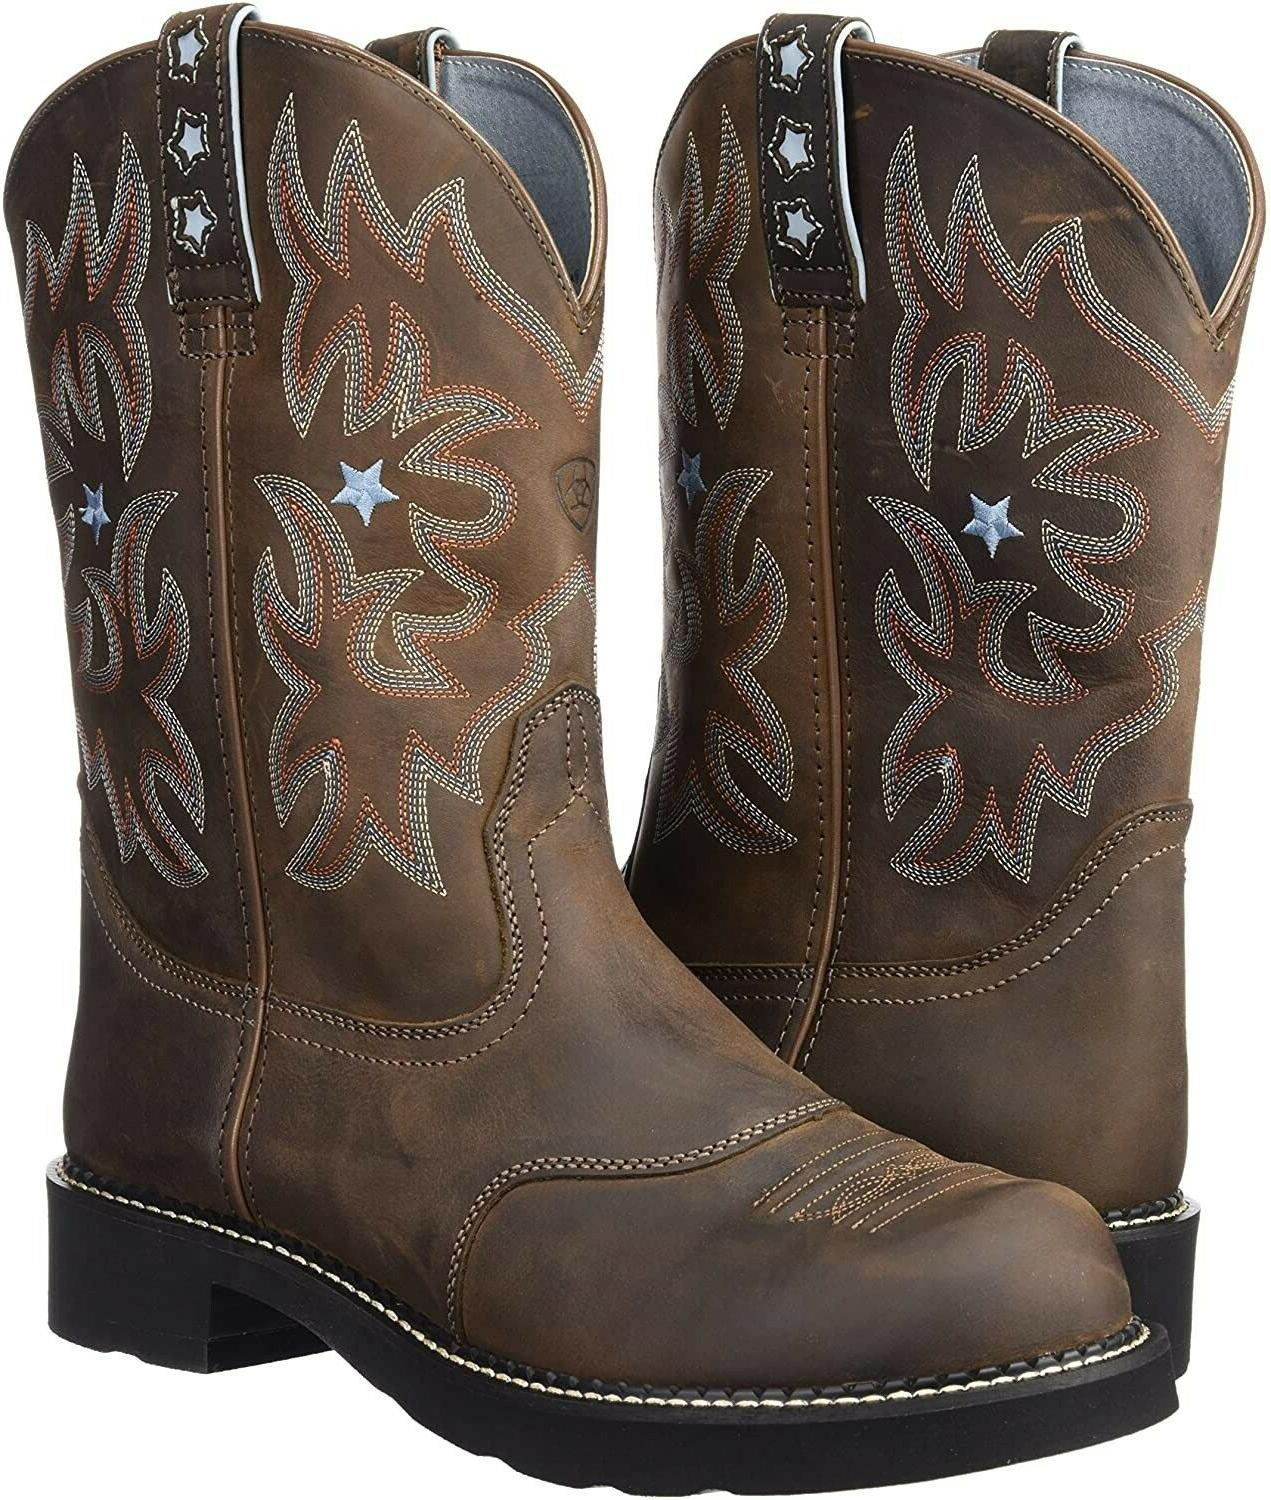 185454 womens probaby leather western cowboy boots